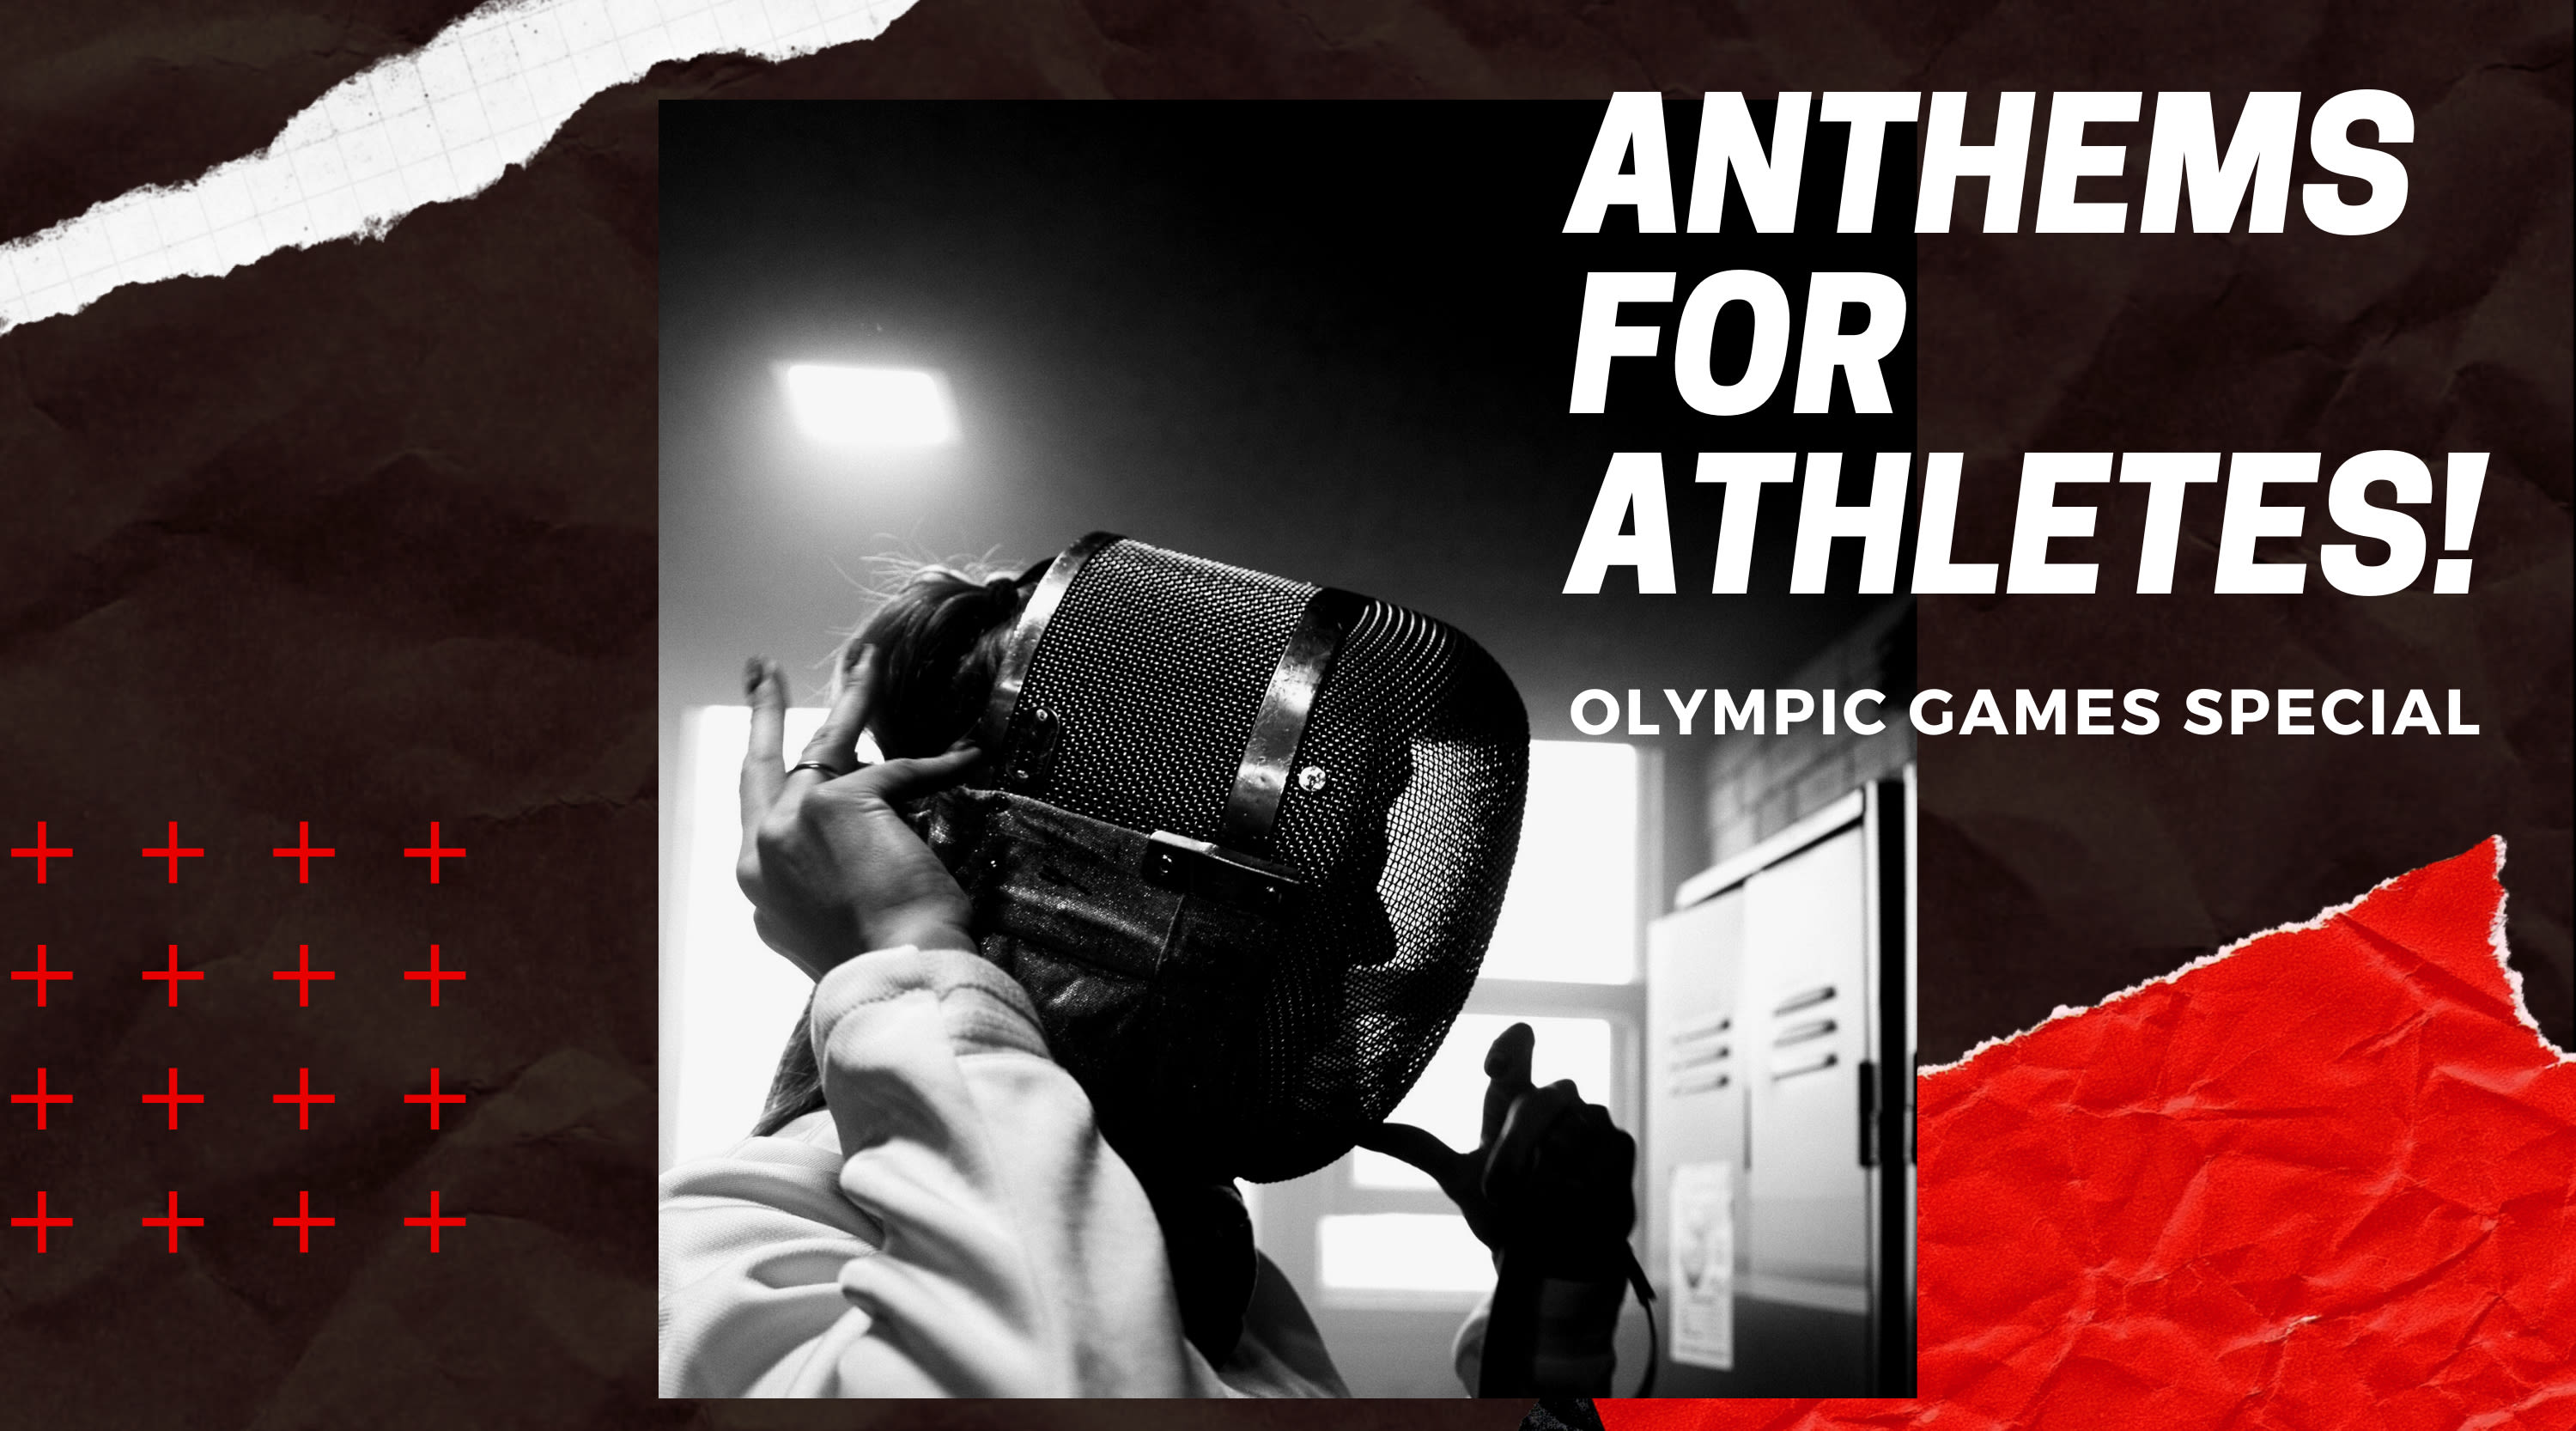 Olympic Games Special: Anthems for Athletes